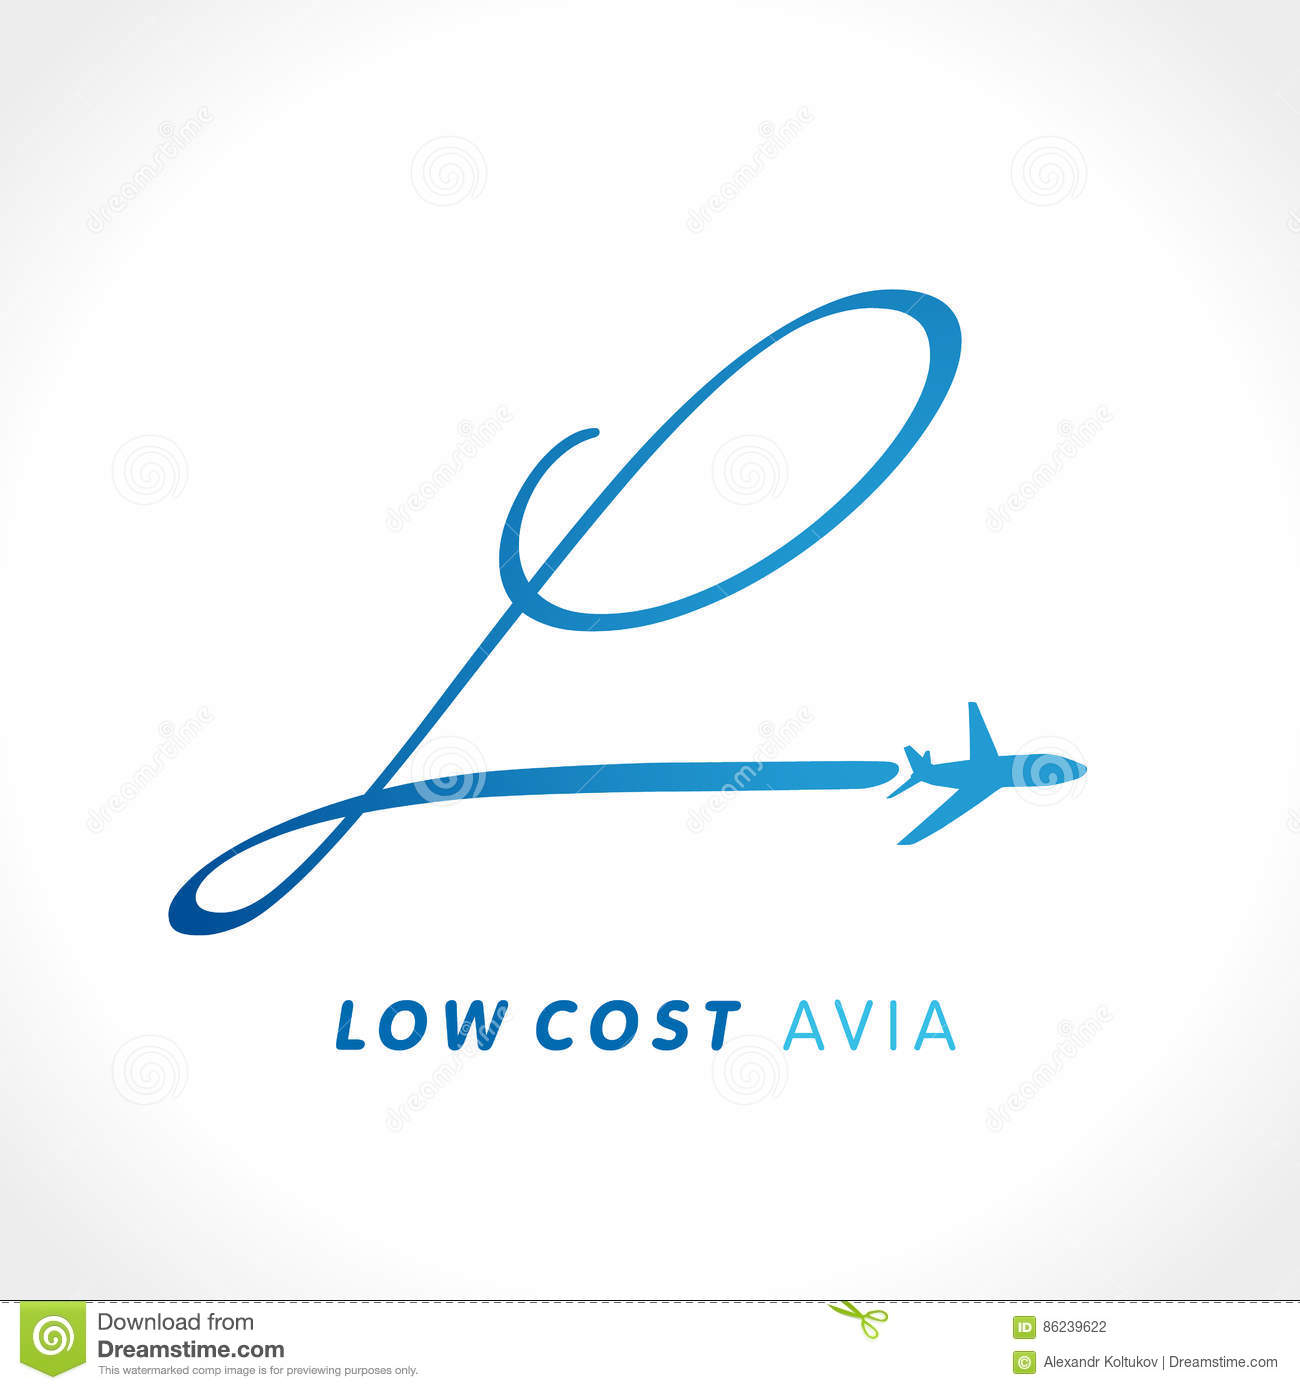 an evaluation of jet blue a low cost airline company Dvorkin1 low-cost carriers in the airline industry: an in-depth analysis of southwest airlines, jetblue airways and easyjet airlines.